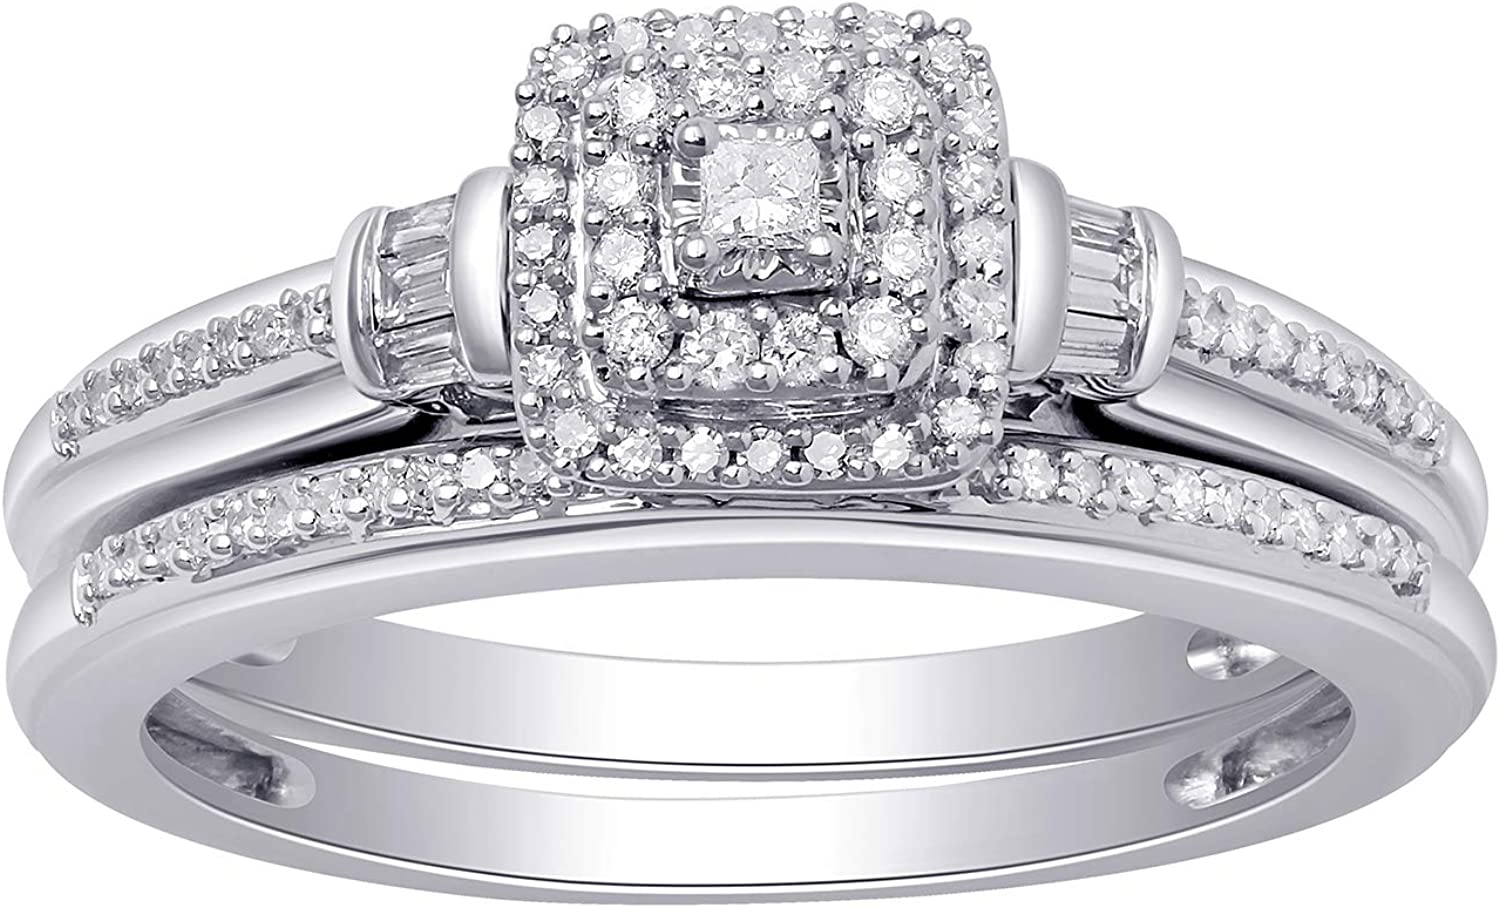 Jewelili 10K White Gold 1/4 CTTW Princess, Baguette and Round Diamond Bridal Ring, Size 7